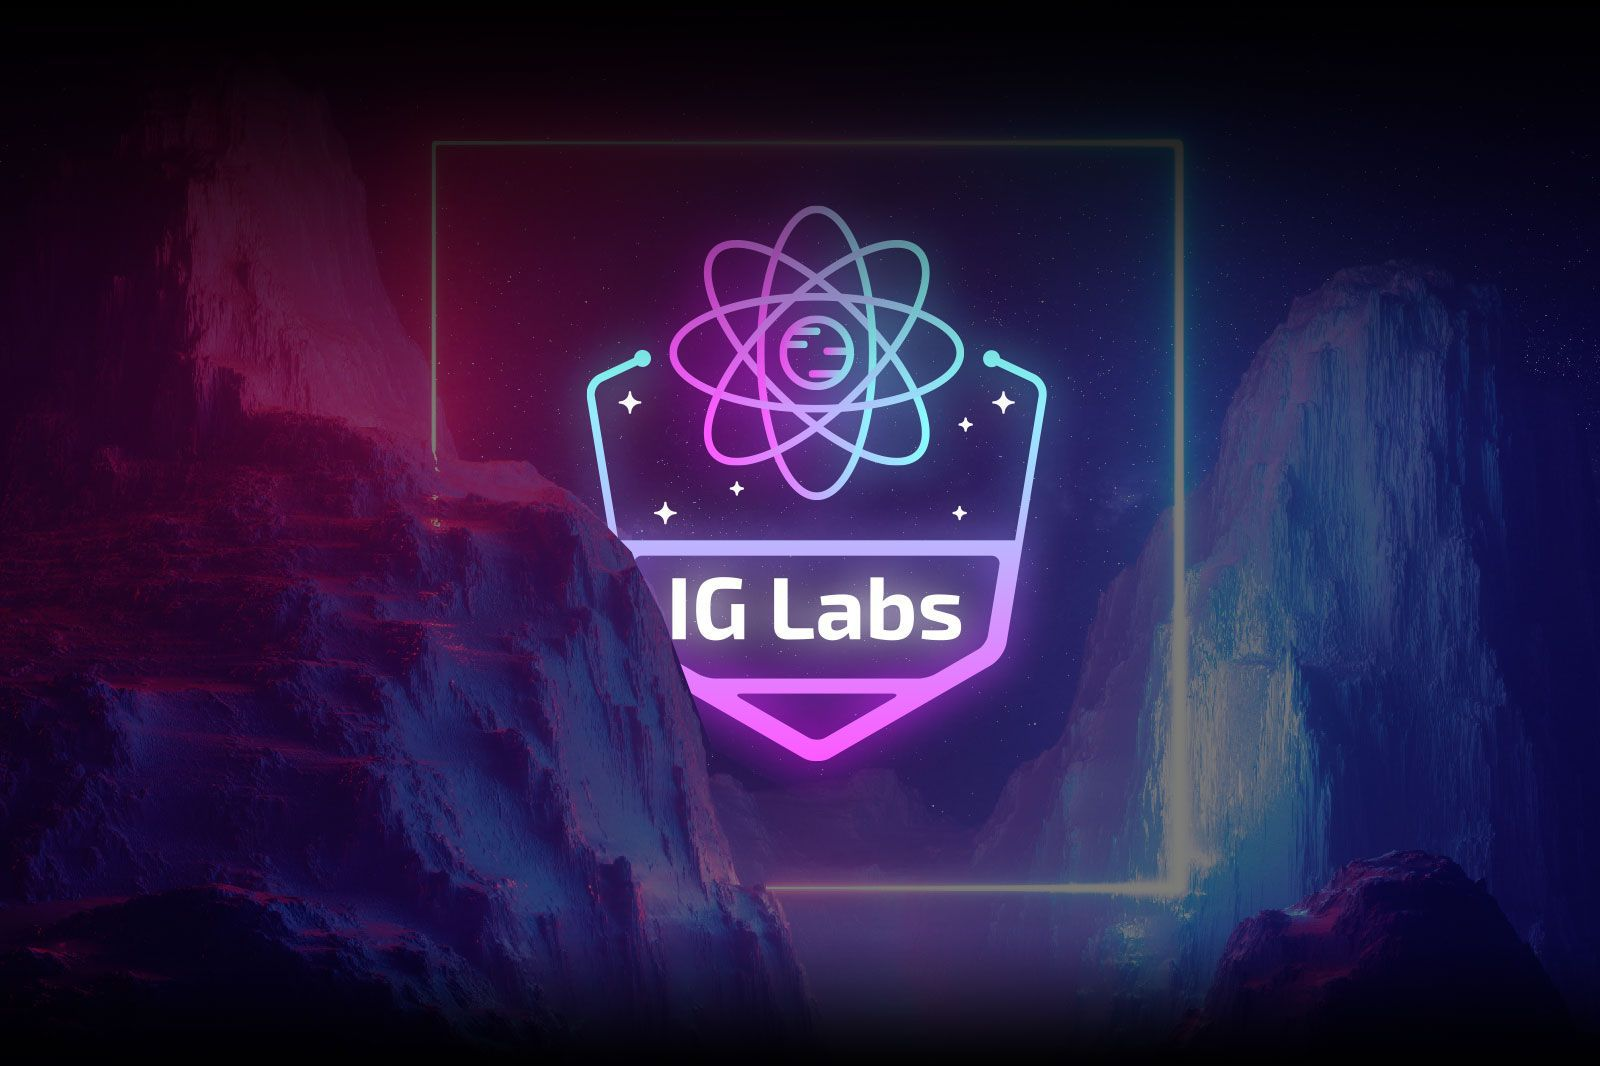 IGLabs notice: Change in ORB distribution rate from 09/11/2020